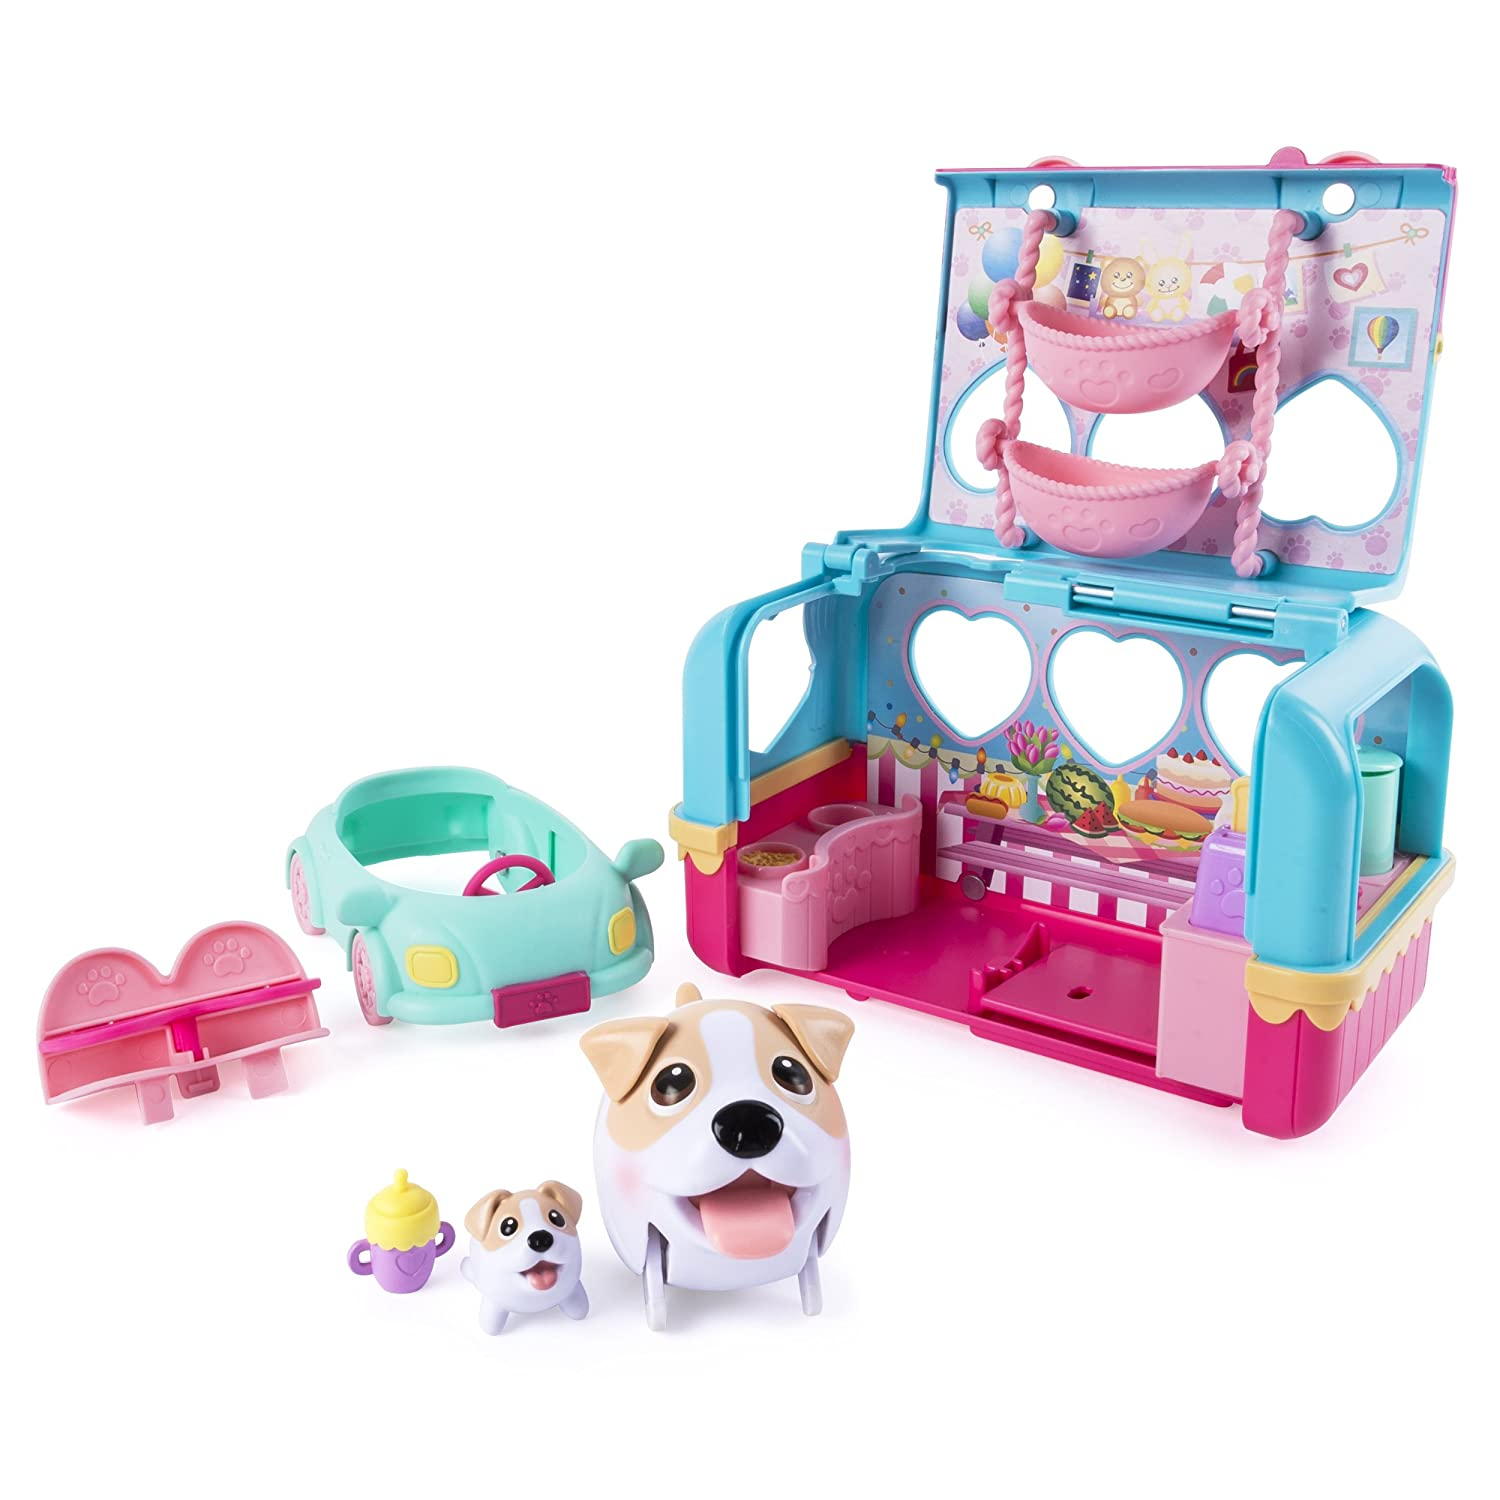 Chubby Puppies - Camper Playset